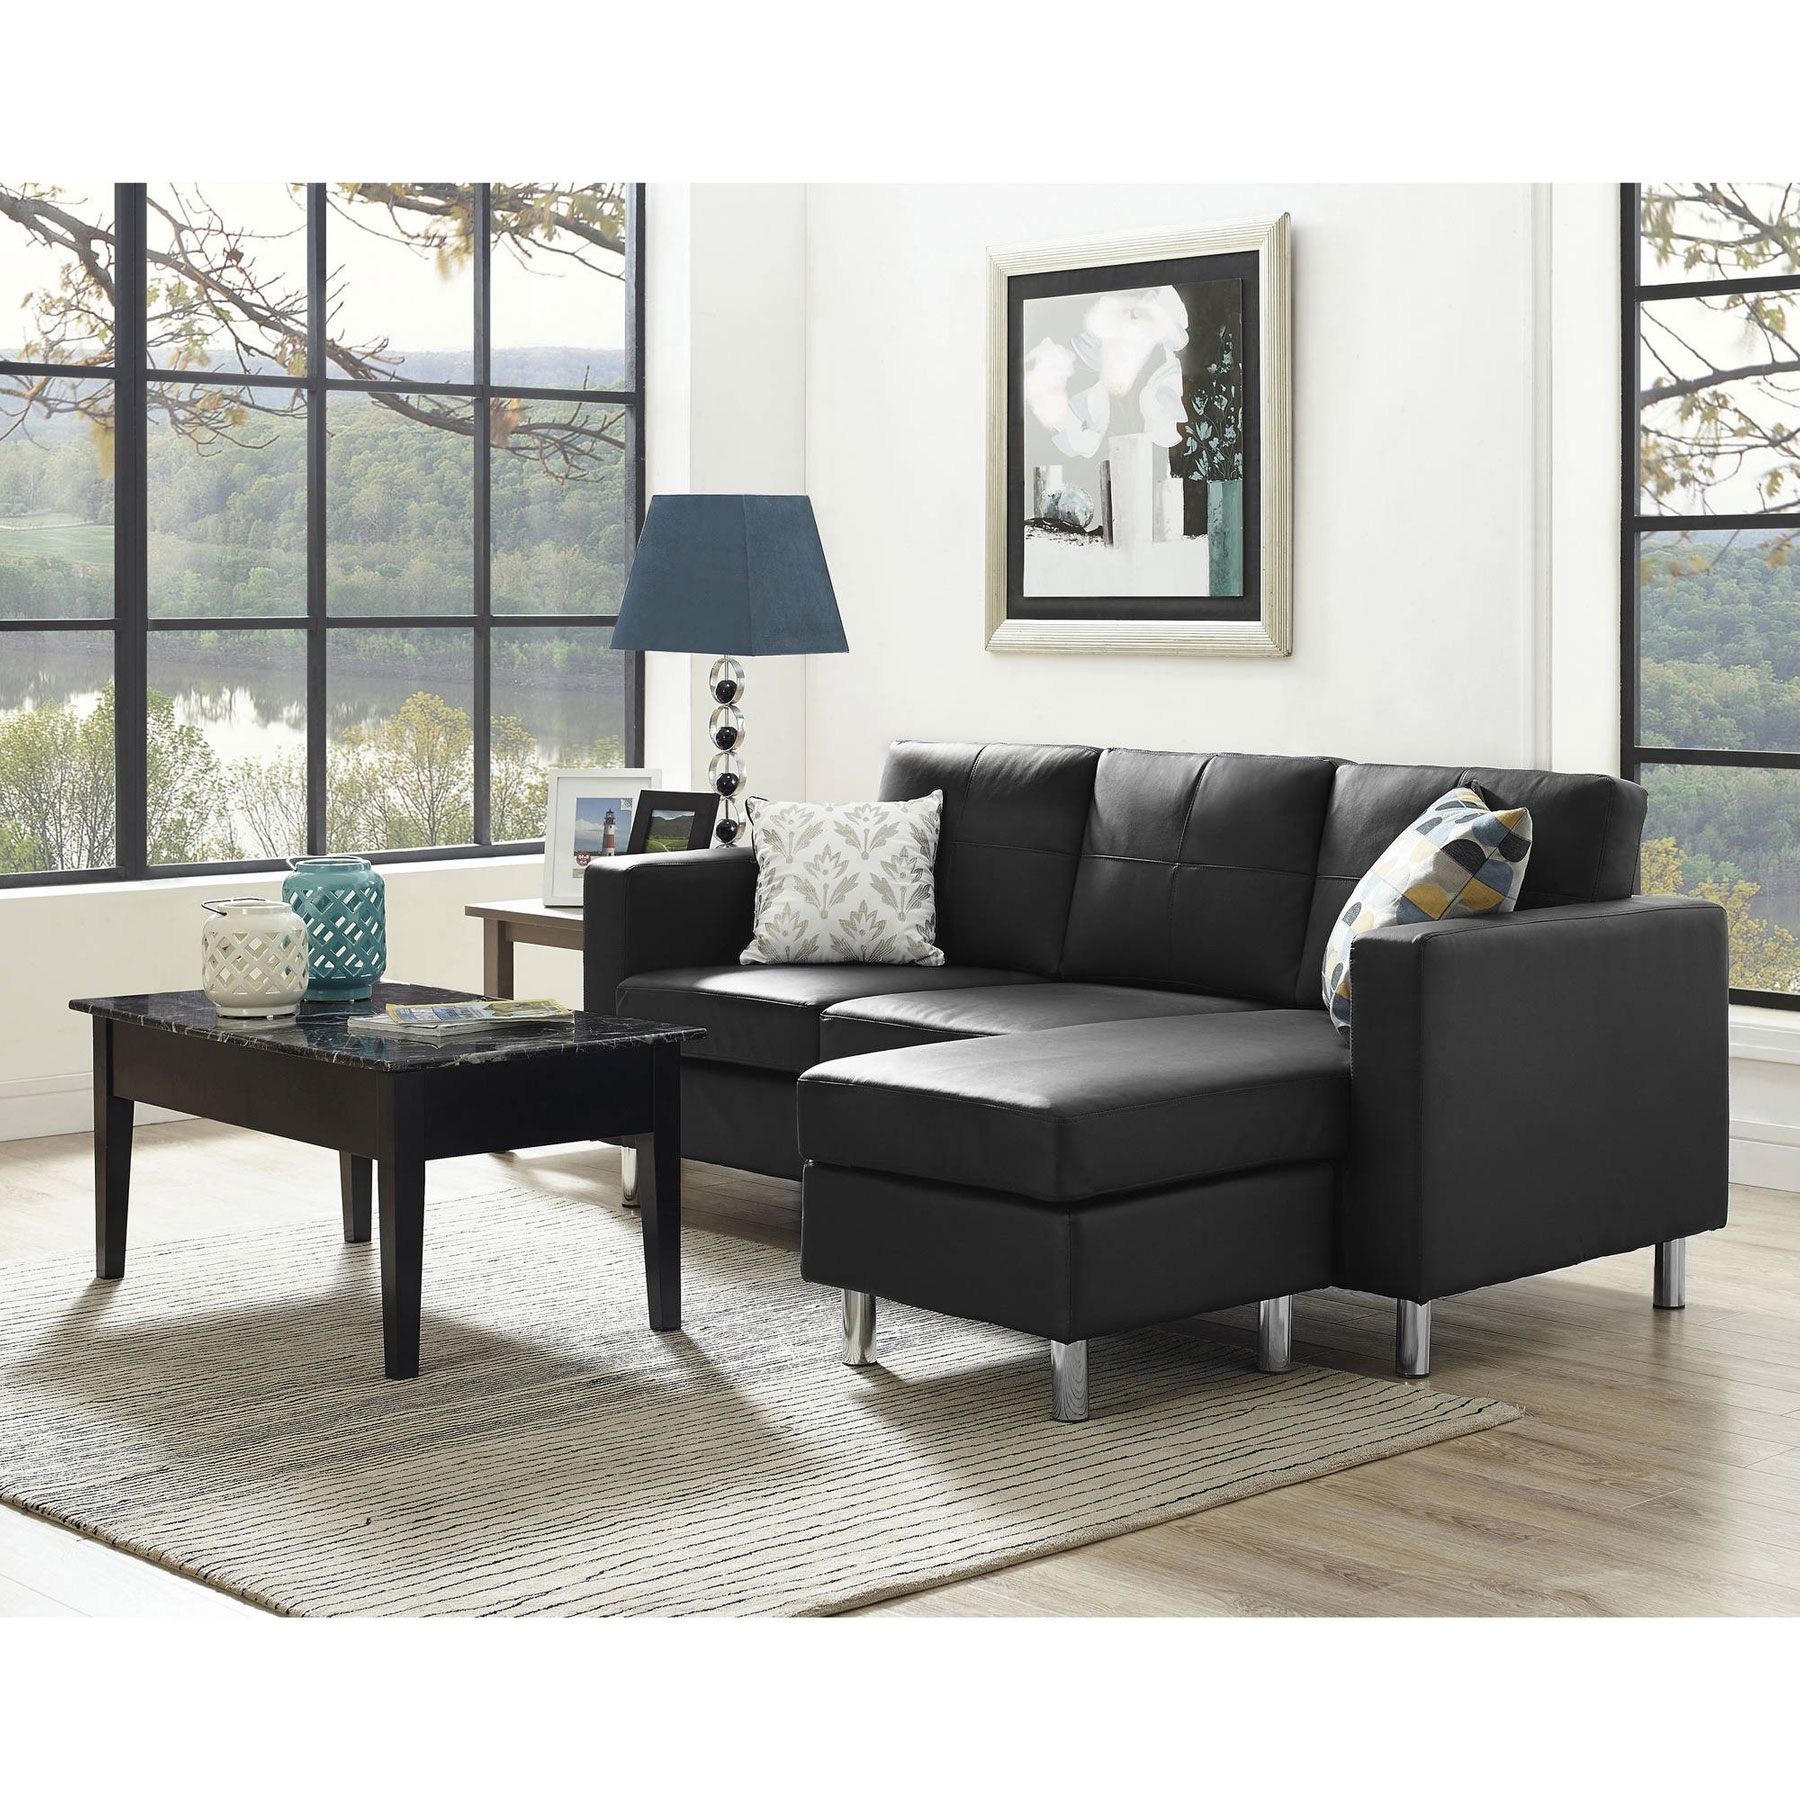 Popular Sectional Sofa: Small Spaces Sectional Sets Small L Shaped Leather With Regard To Sectional Sofas For Small Rooms (View 7 of 20)